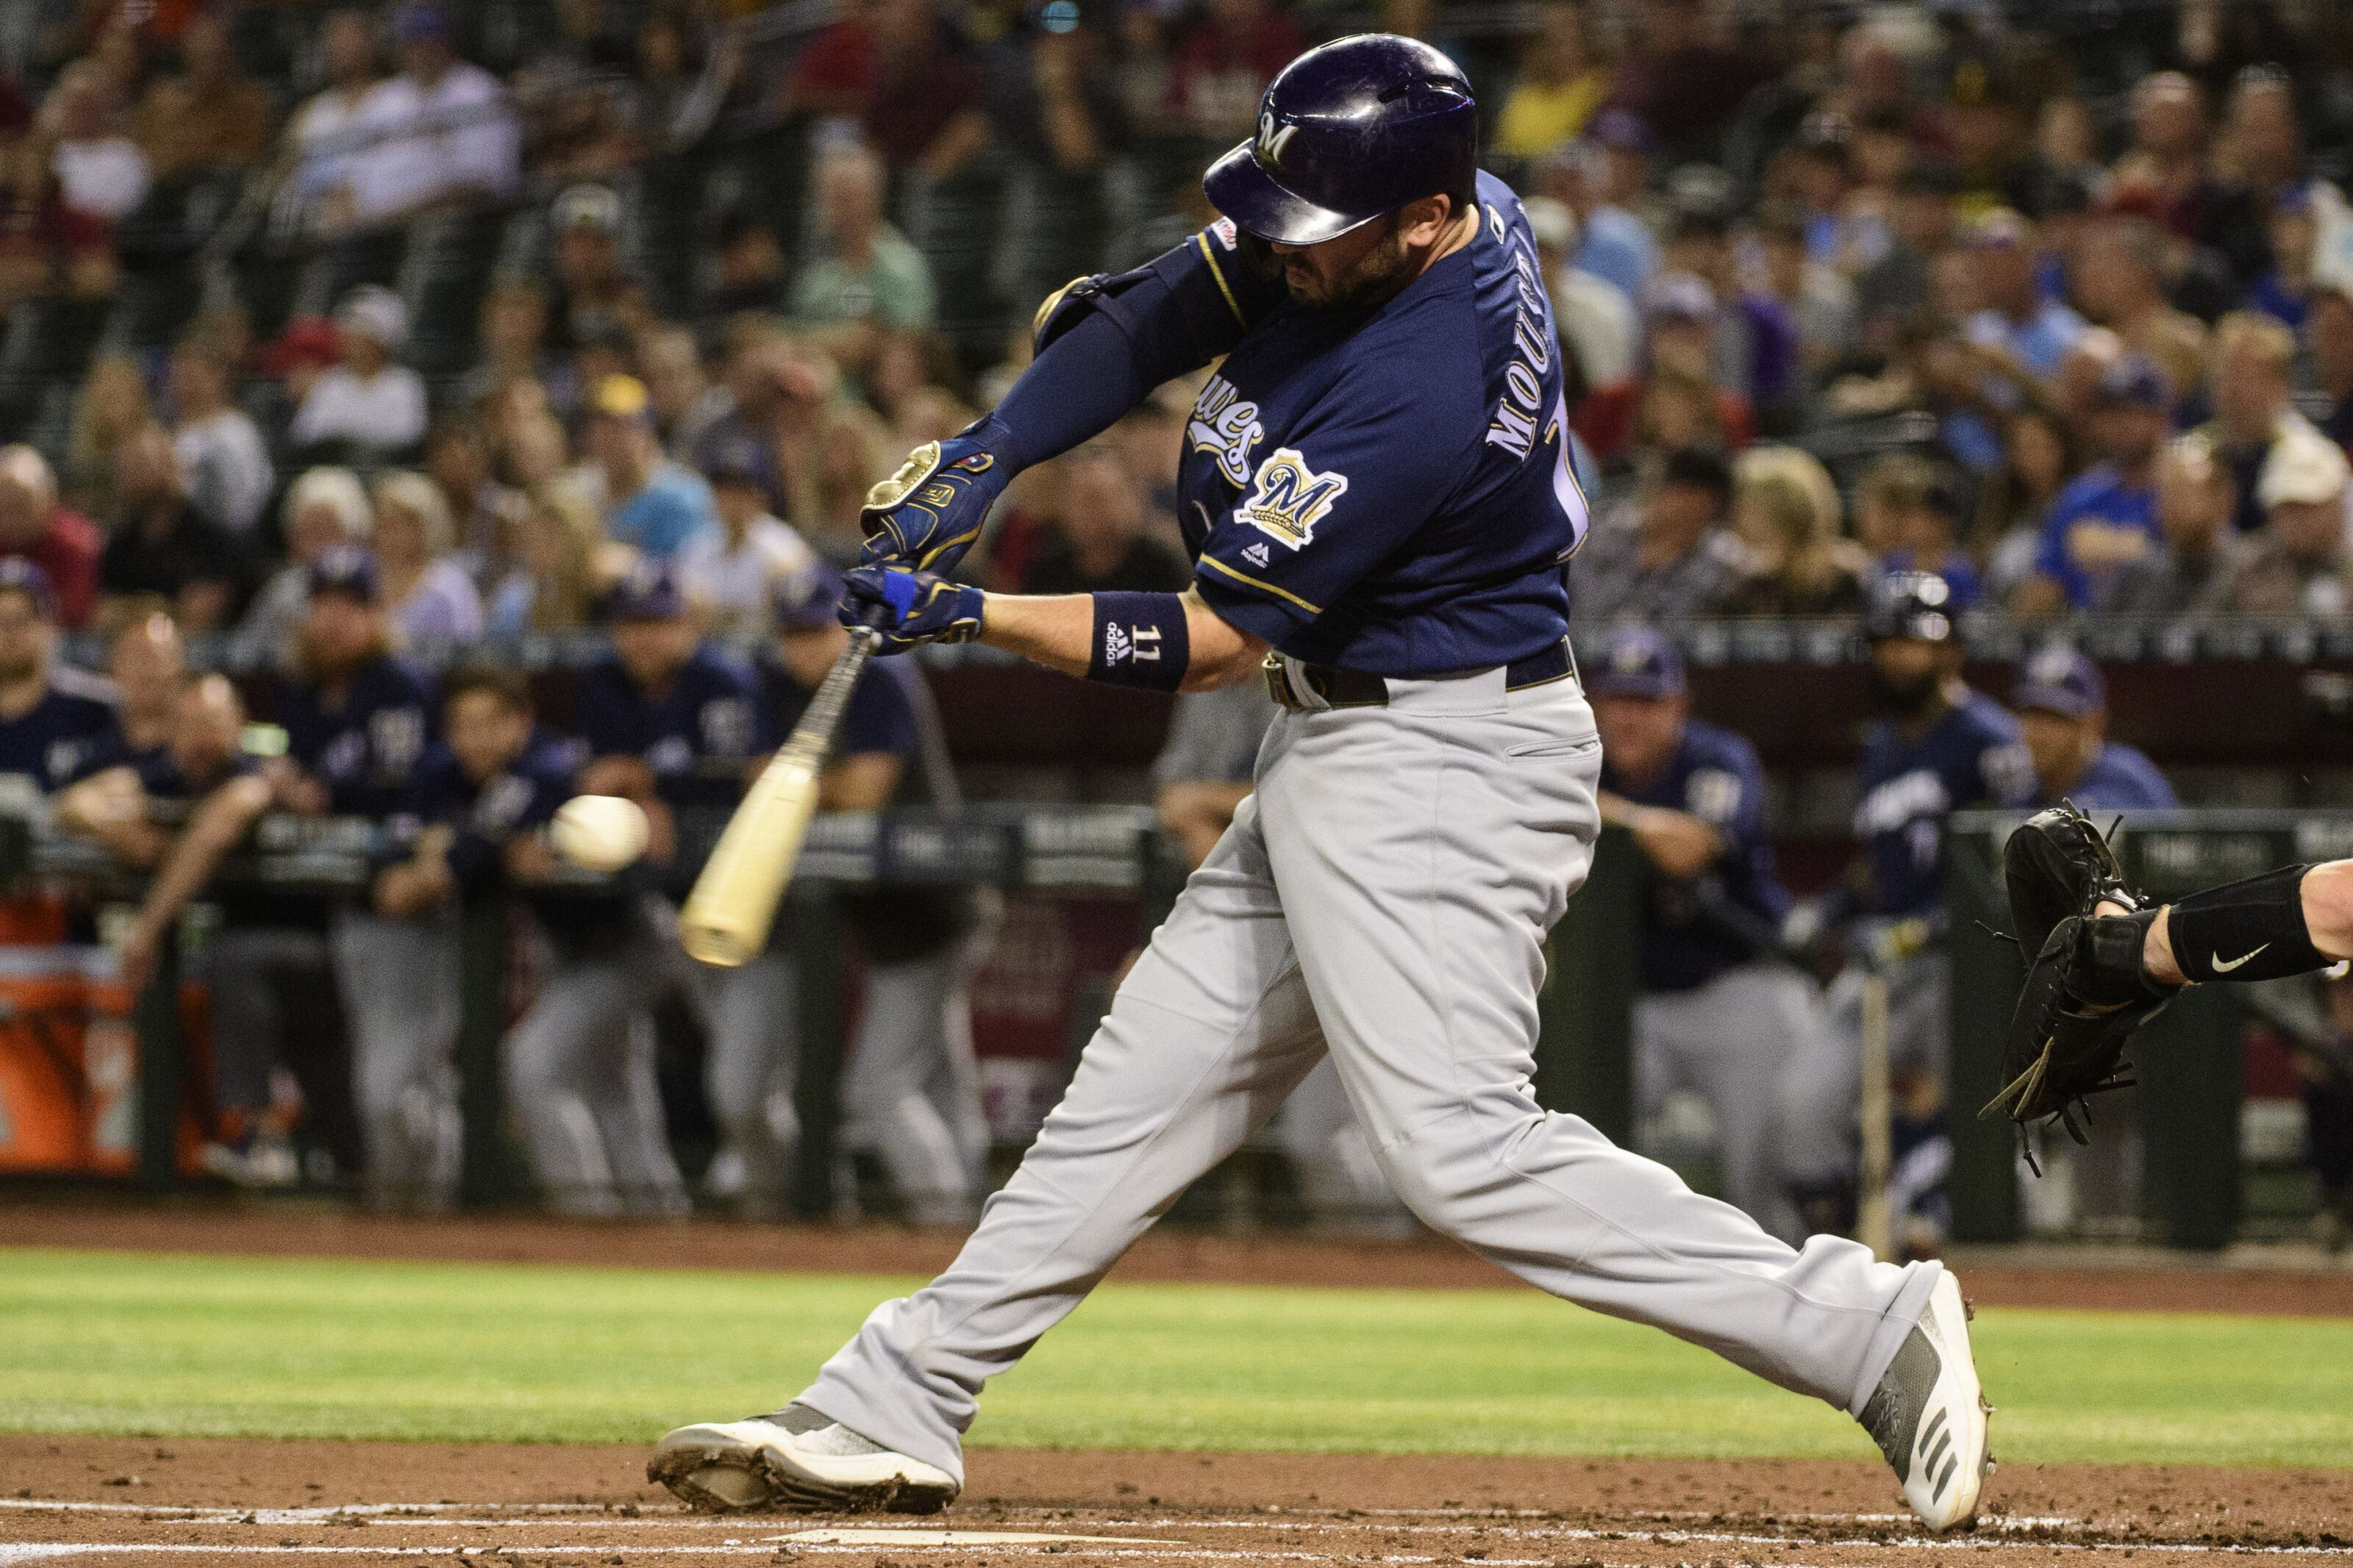 Cubs: How the Mike Moustakas signing impacts the team